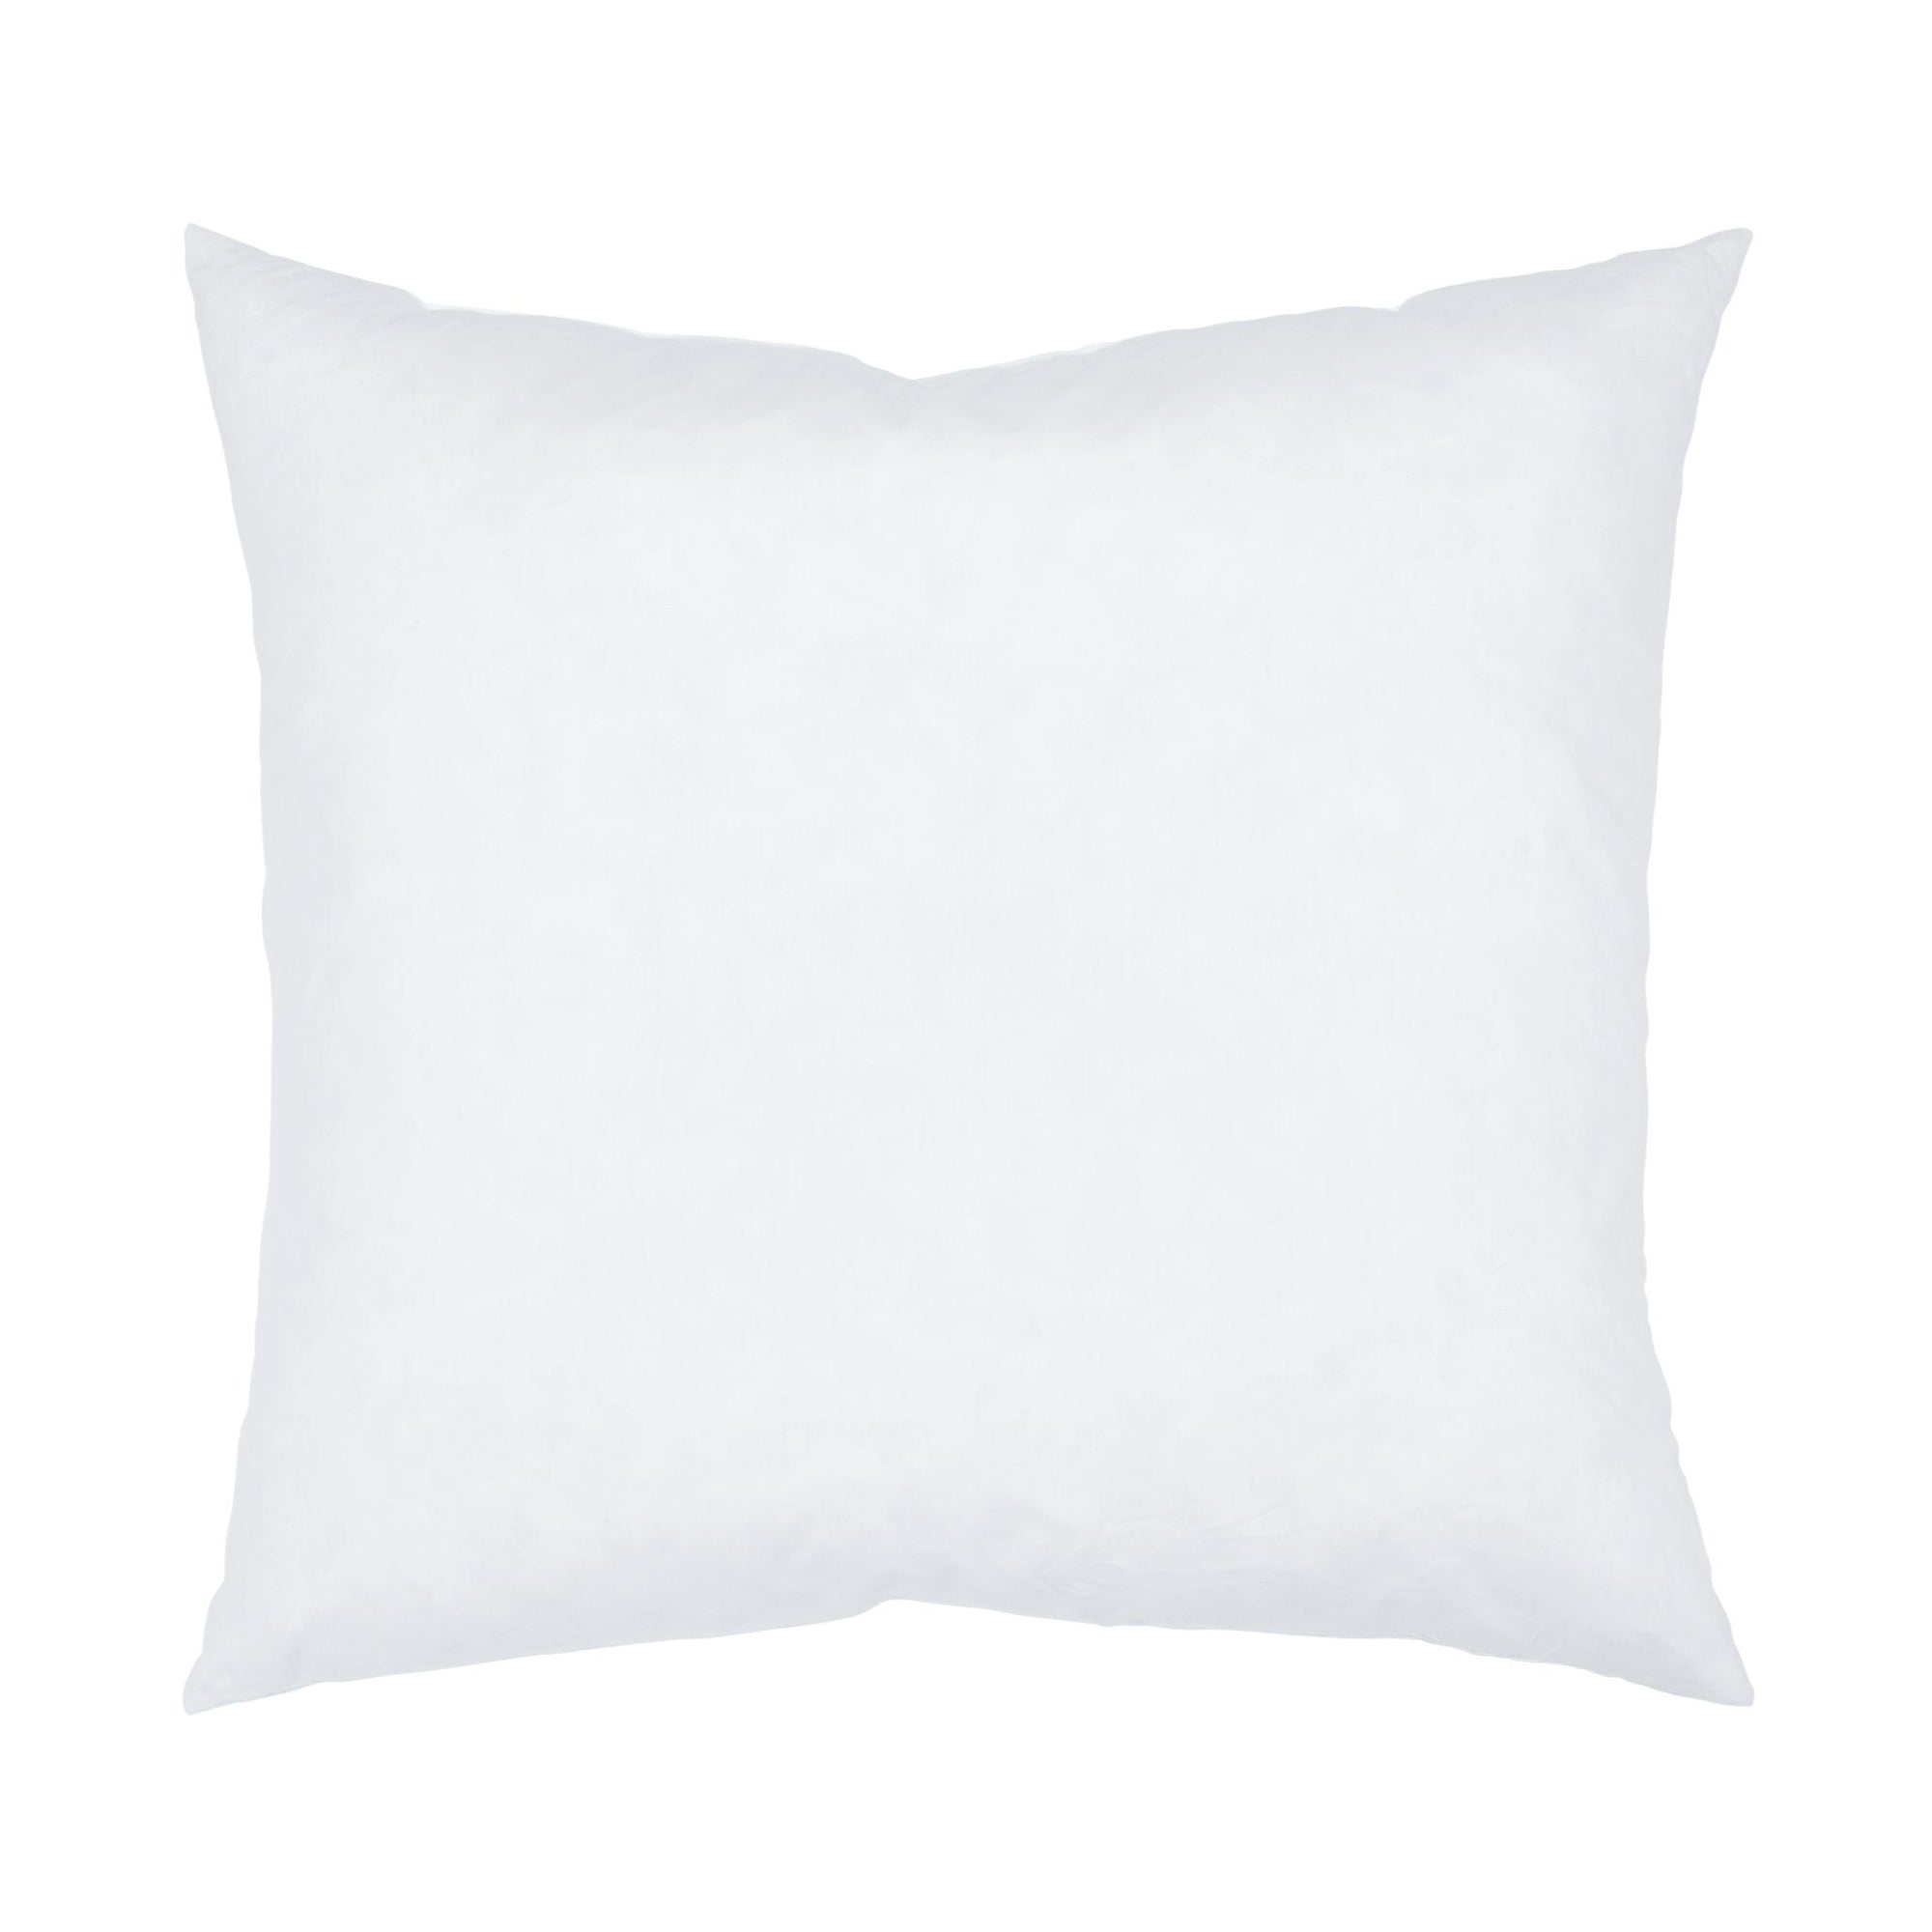 "26"" x 26"" Pillow Insert"